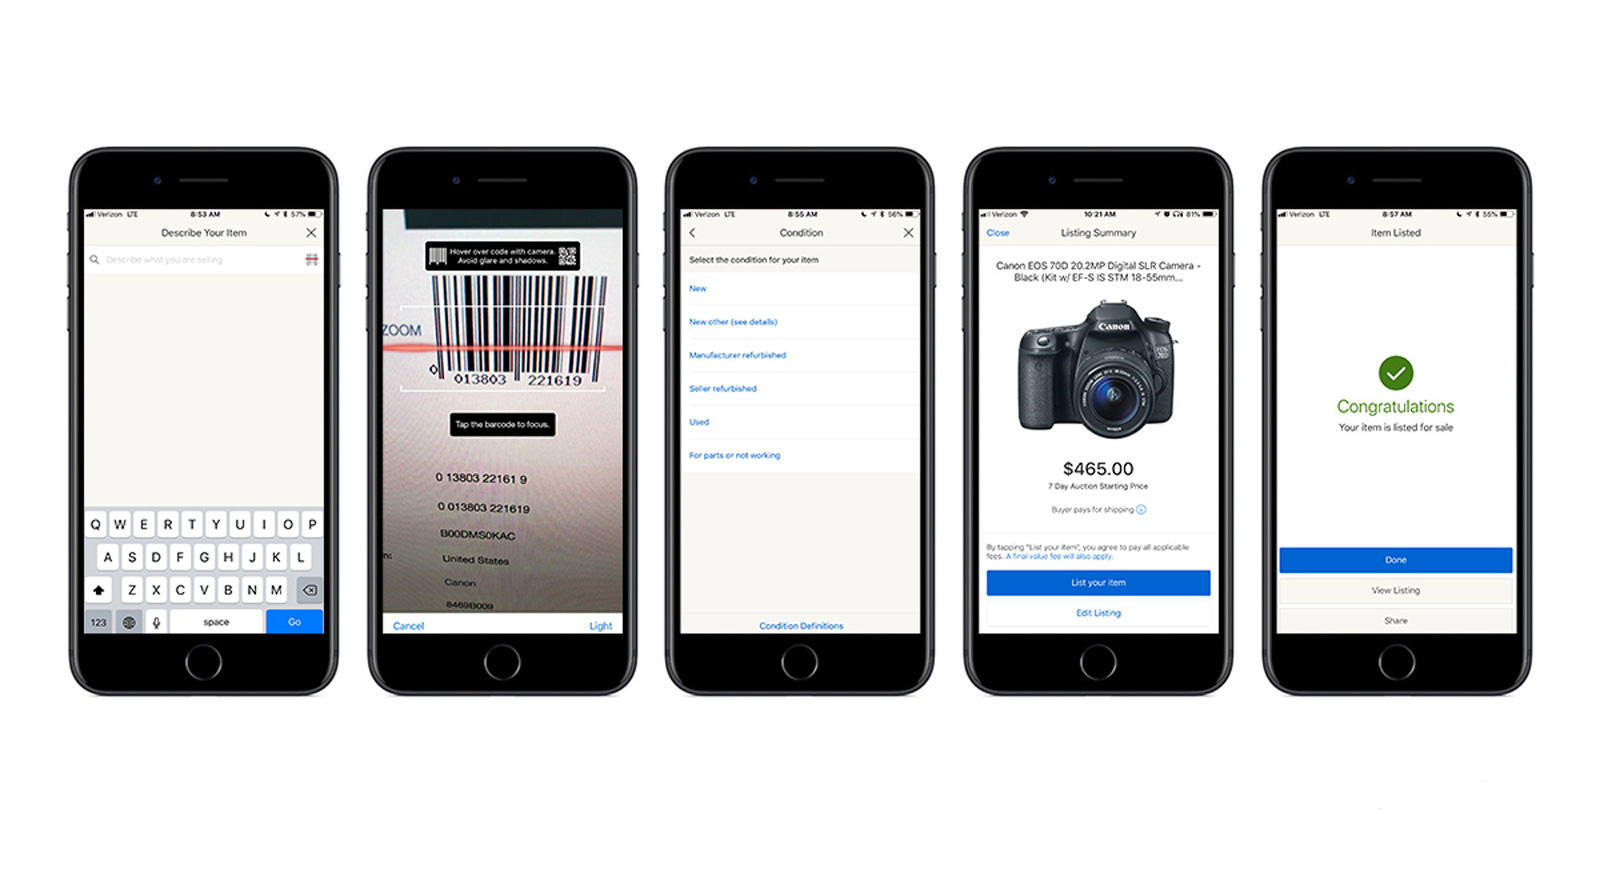 Ebay app update allows posting and selling items faster